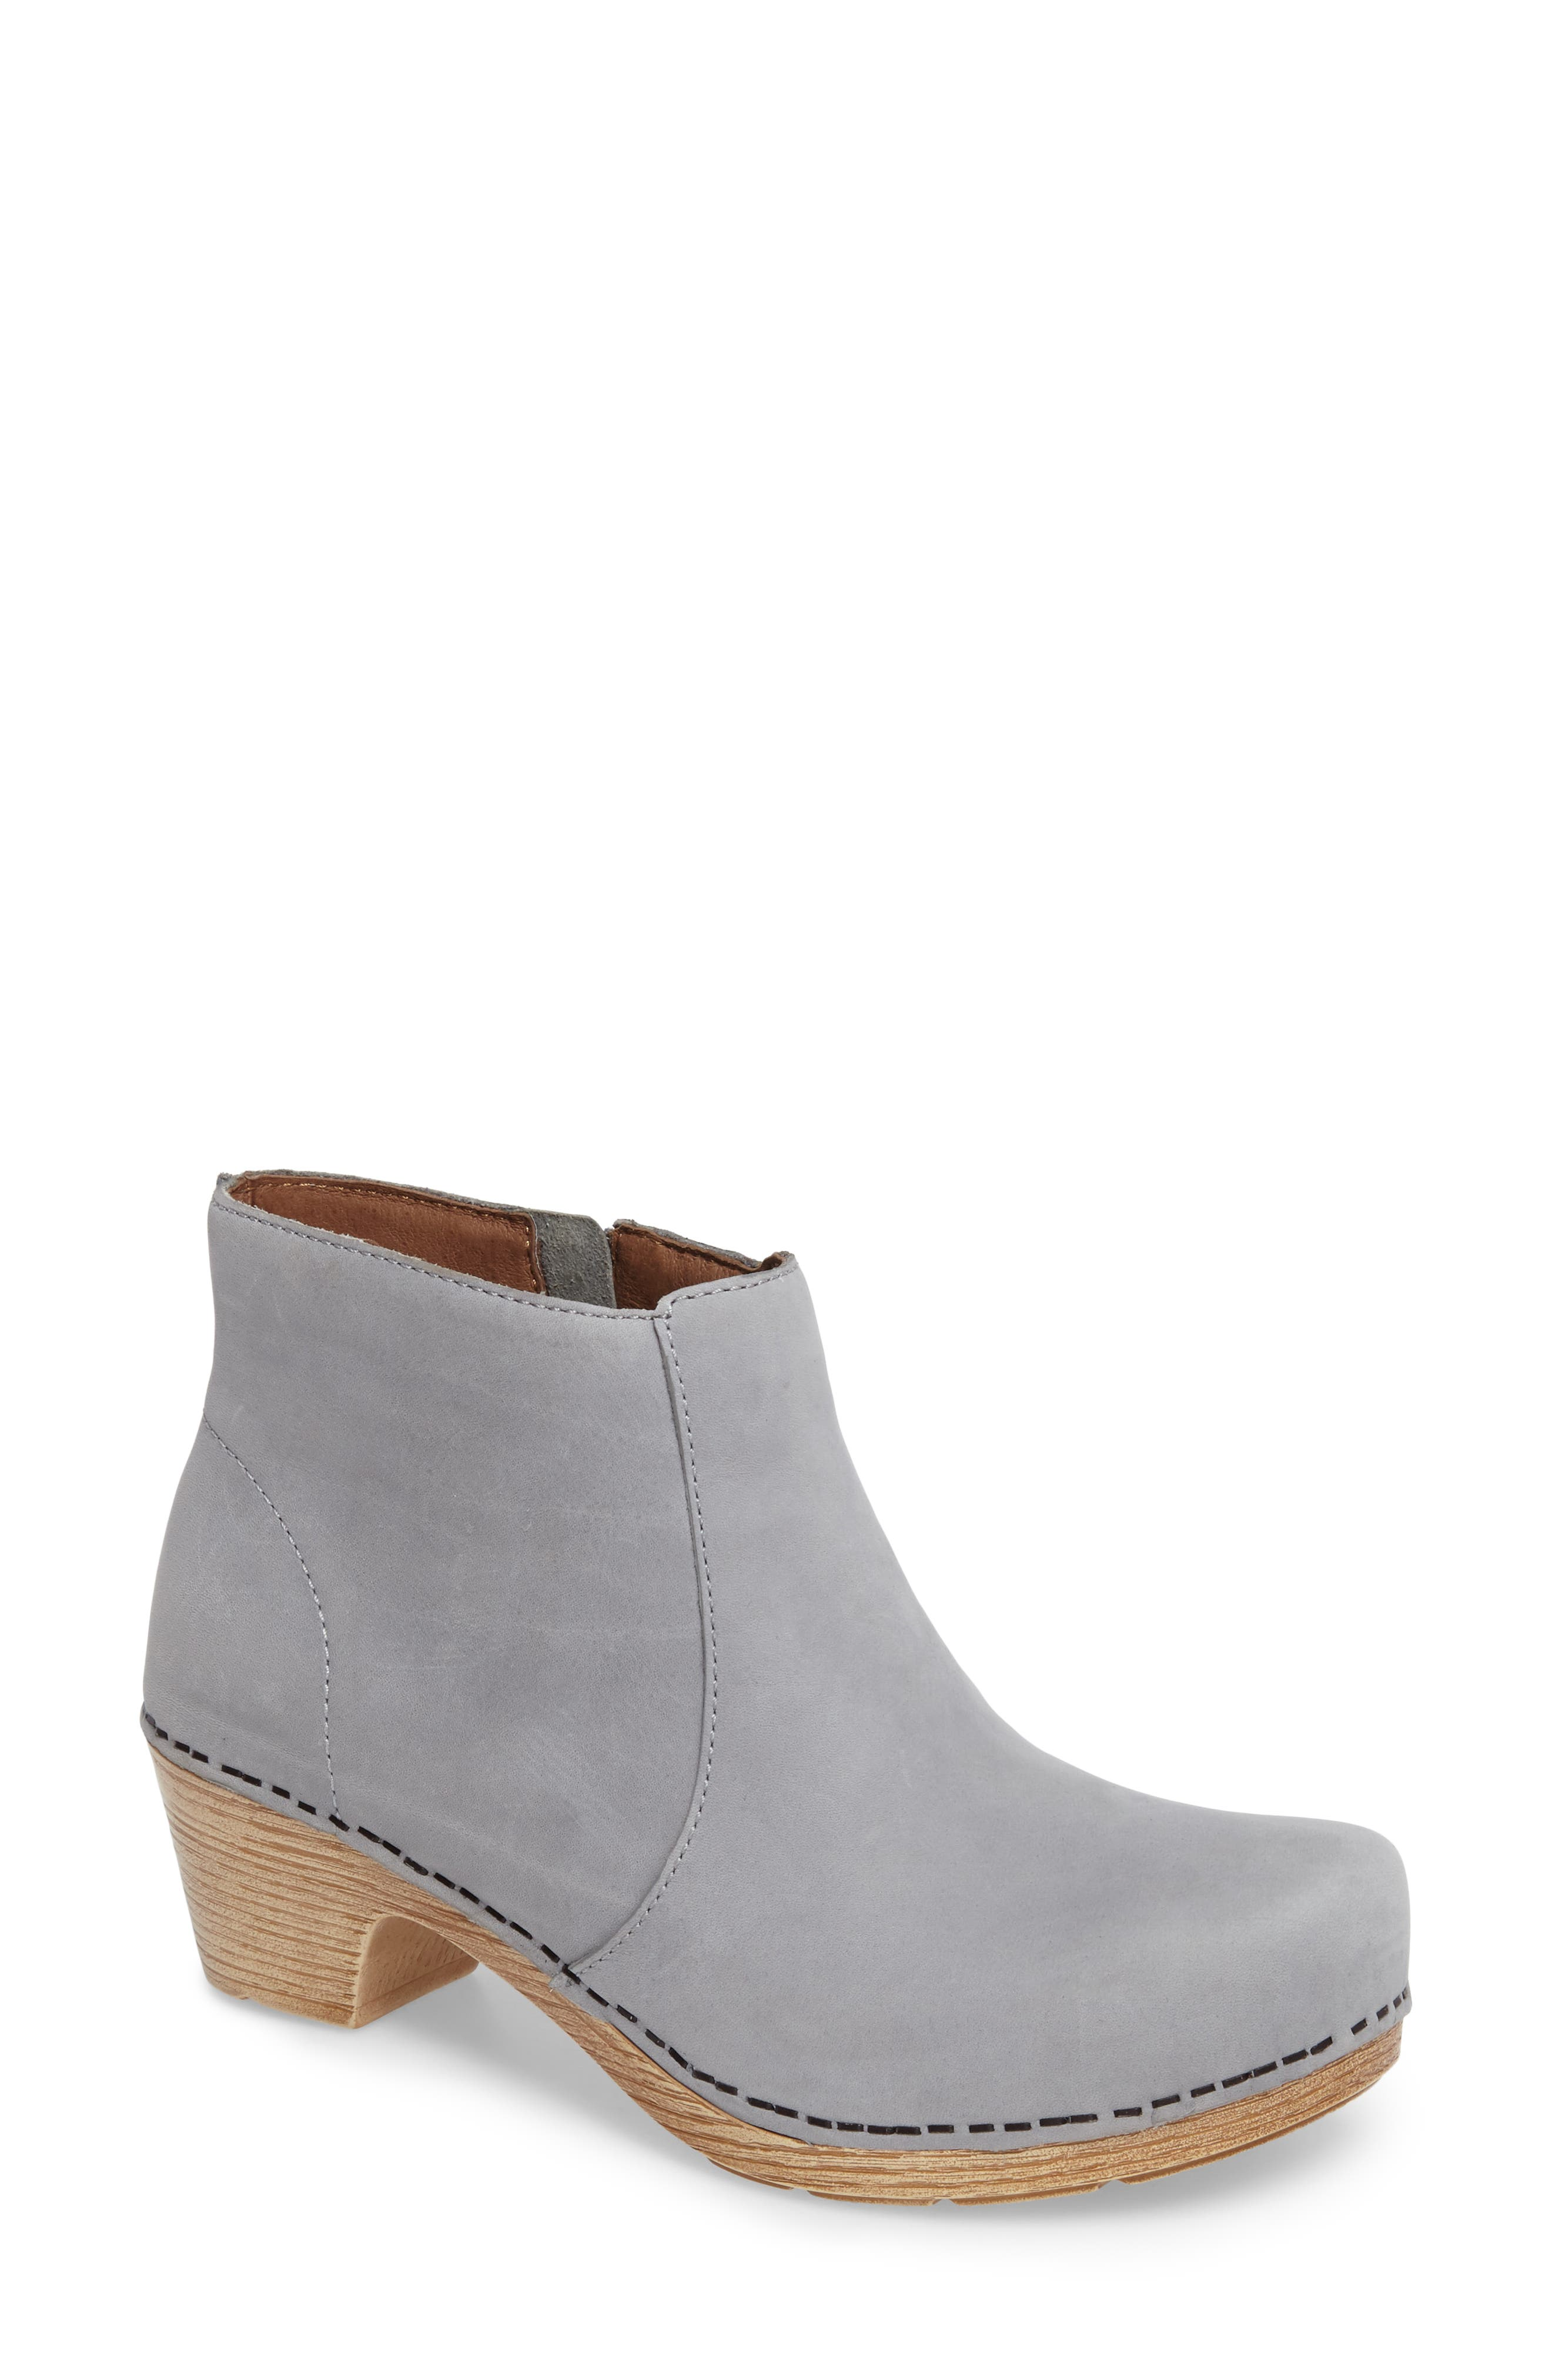 'Maria' Bootie,                             Main thumbnail 5, color,